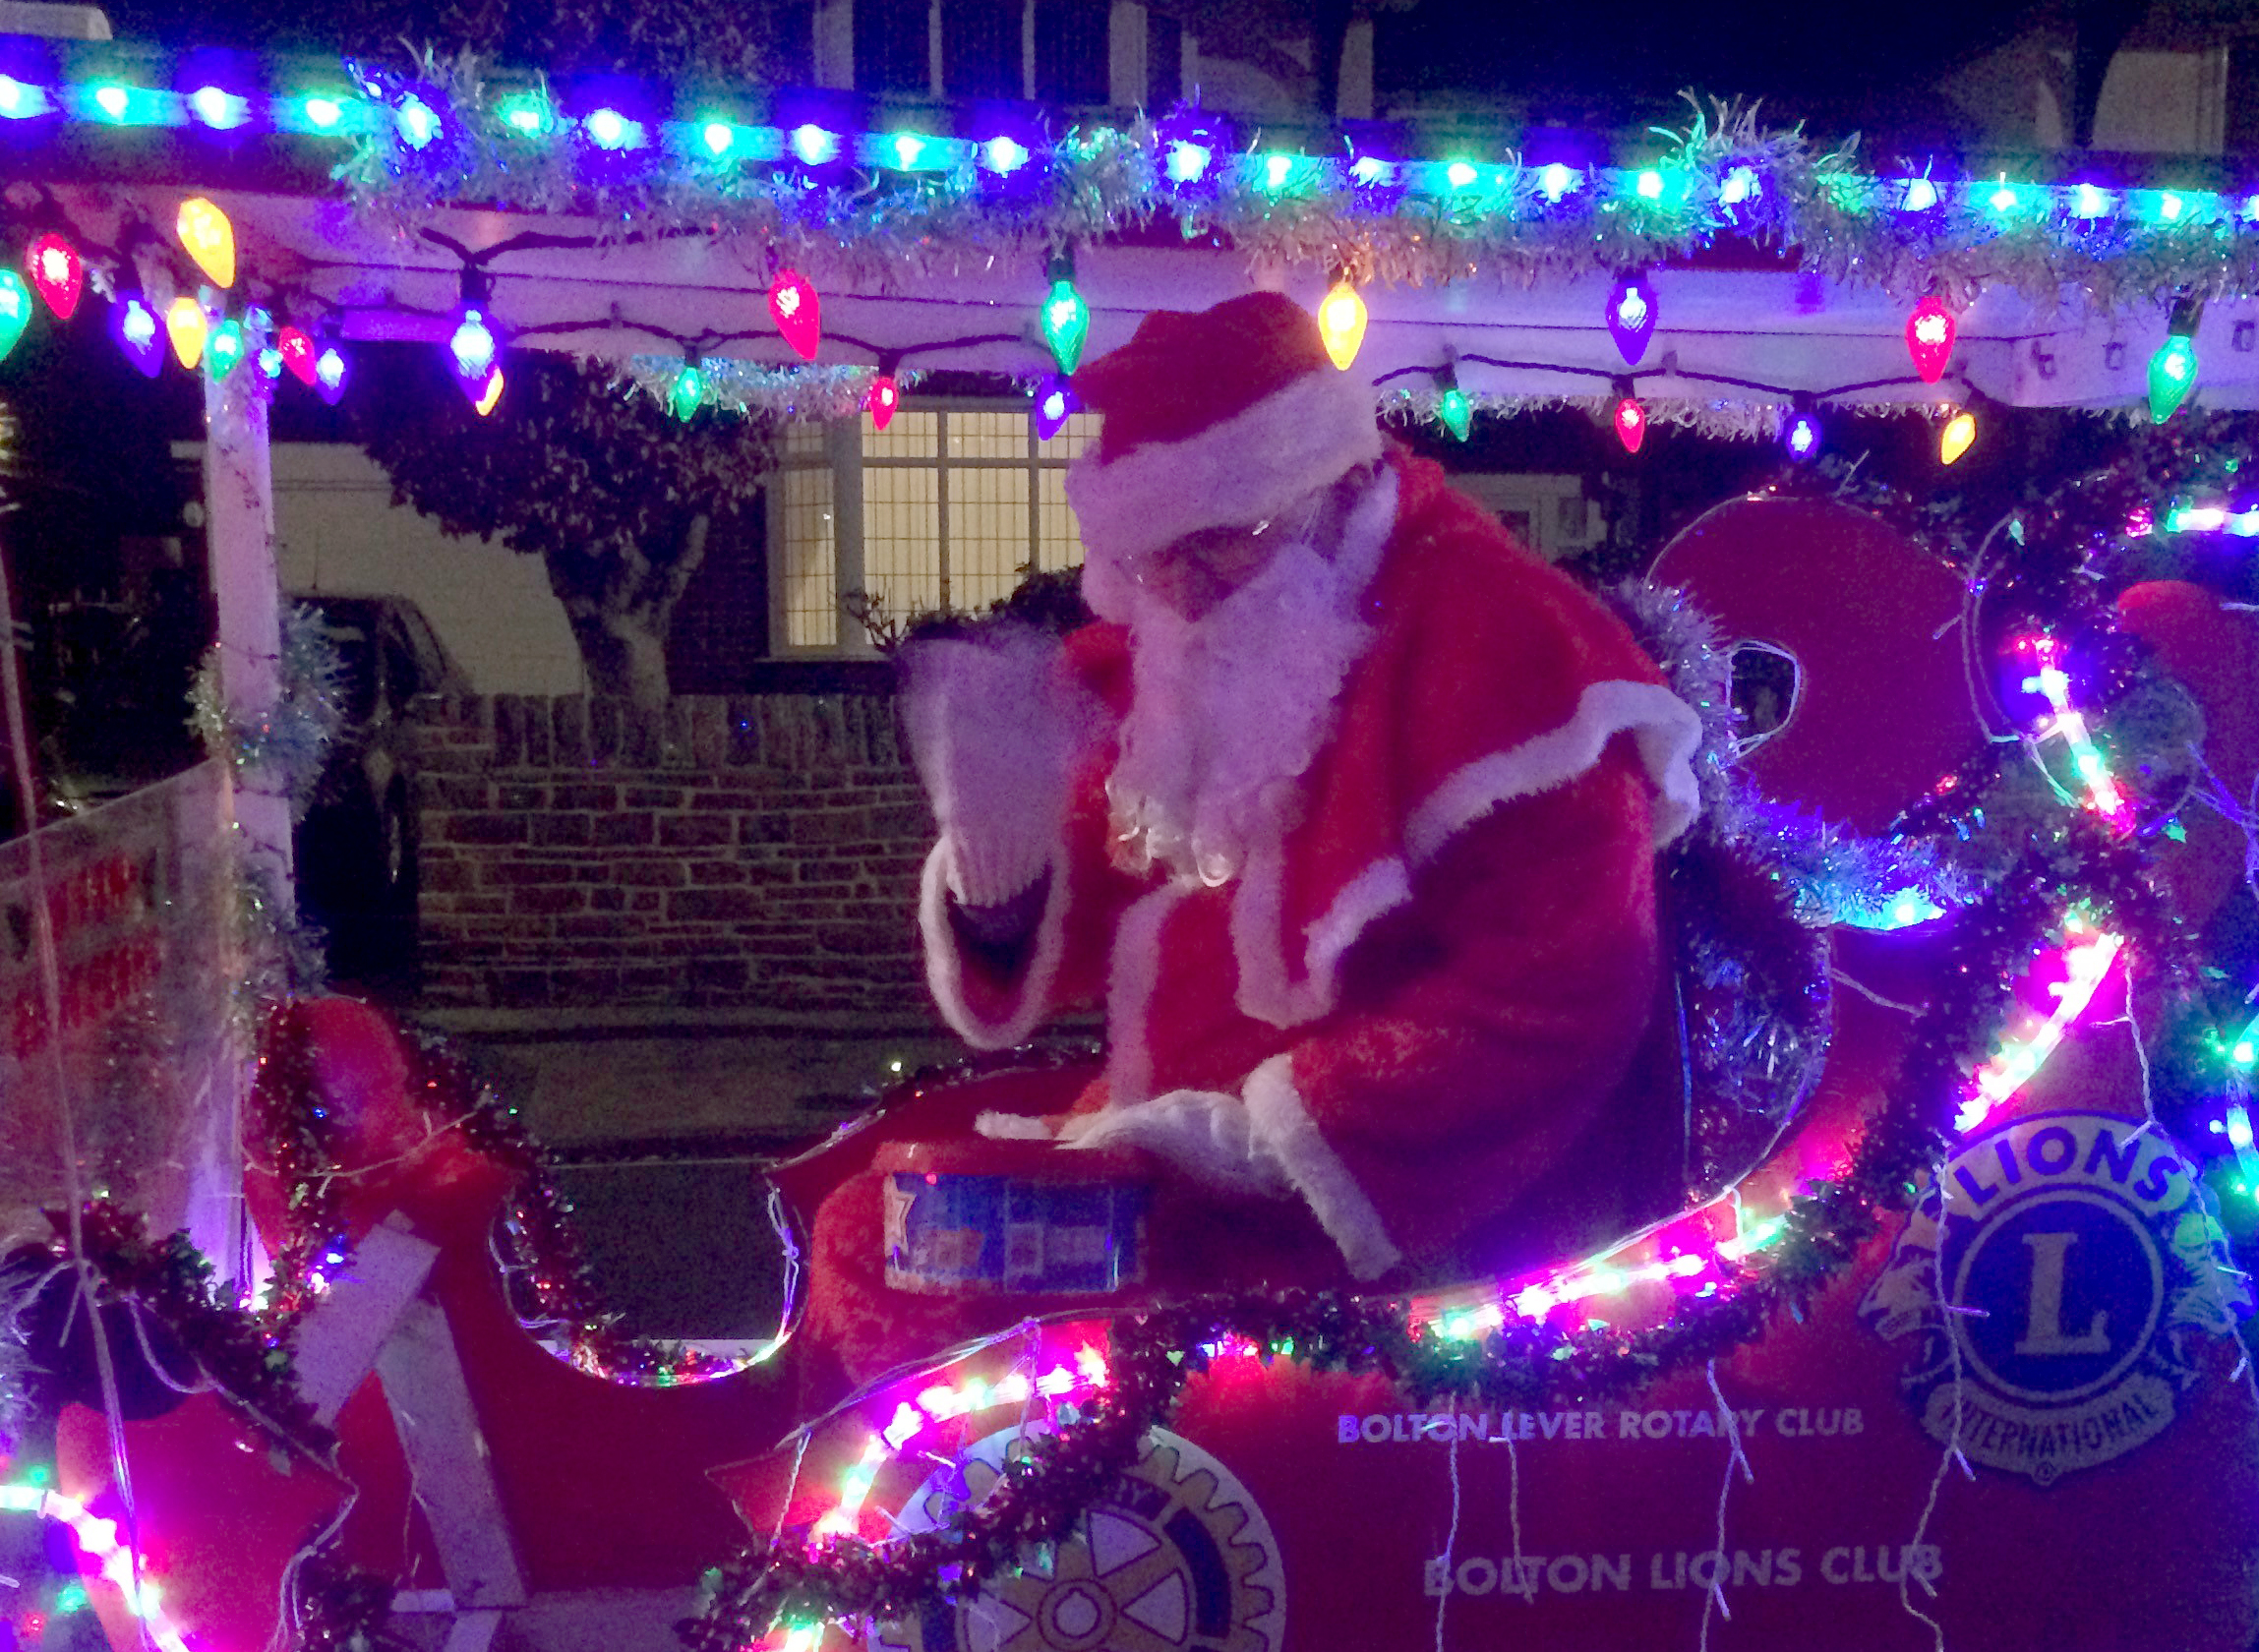 Teenage yobs hurl abuse and obscenities at Father Christmas during sleigh parade